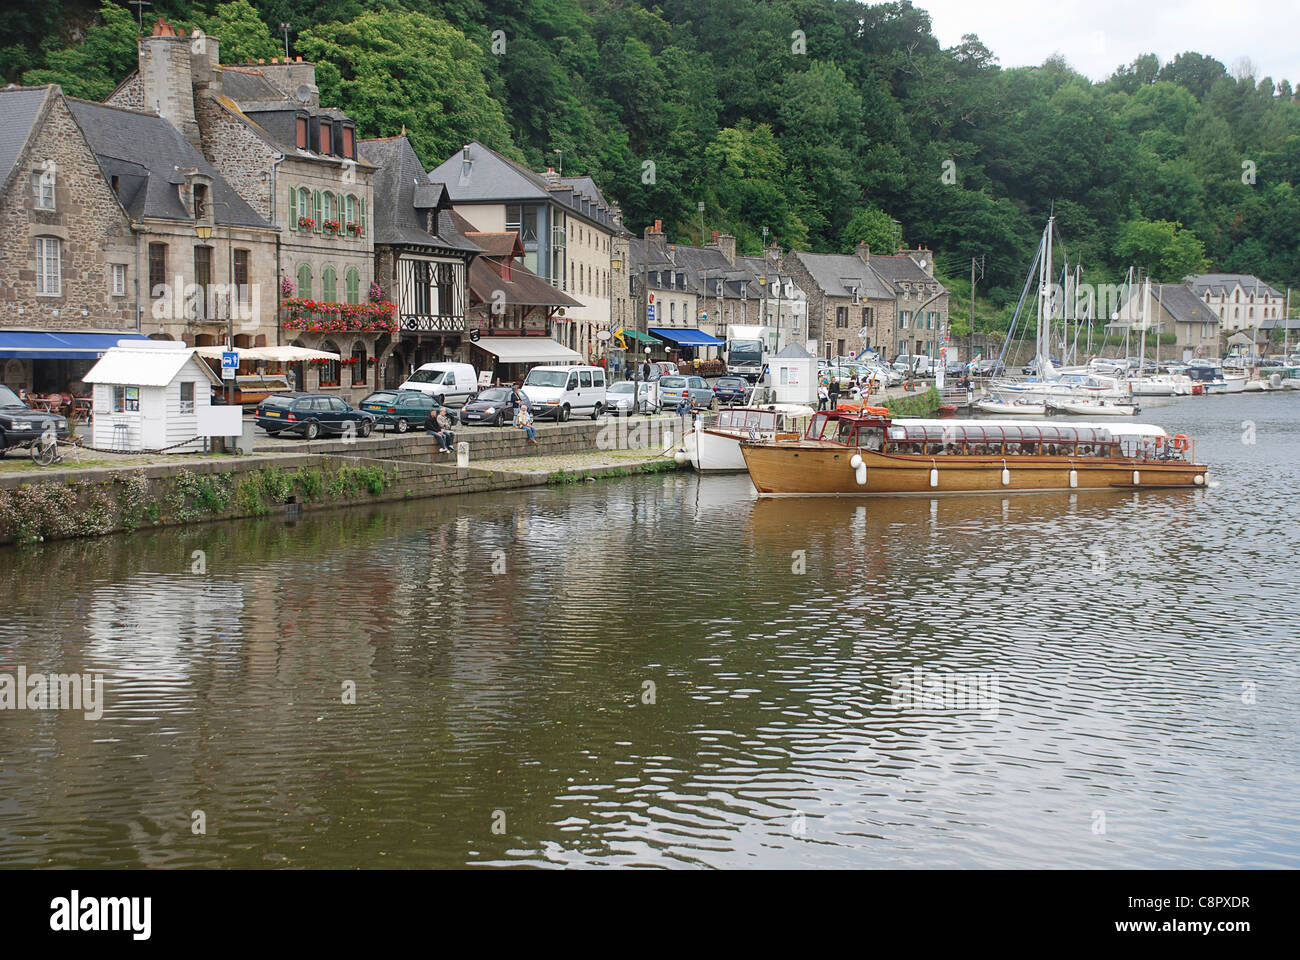 France, Brittany, Dinan, River Rance Stock Photo